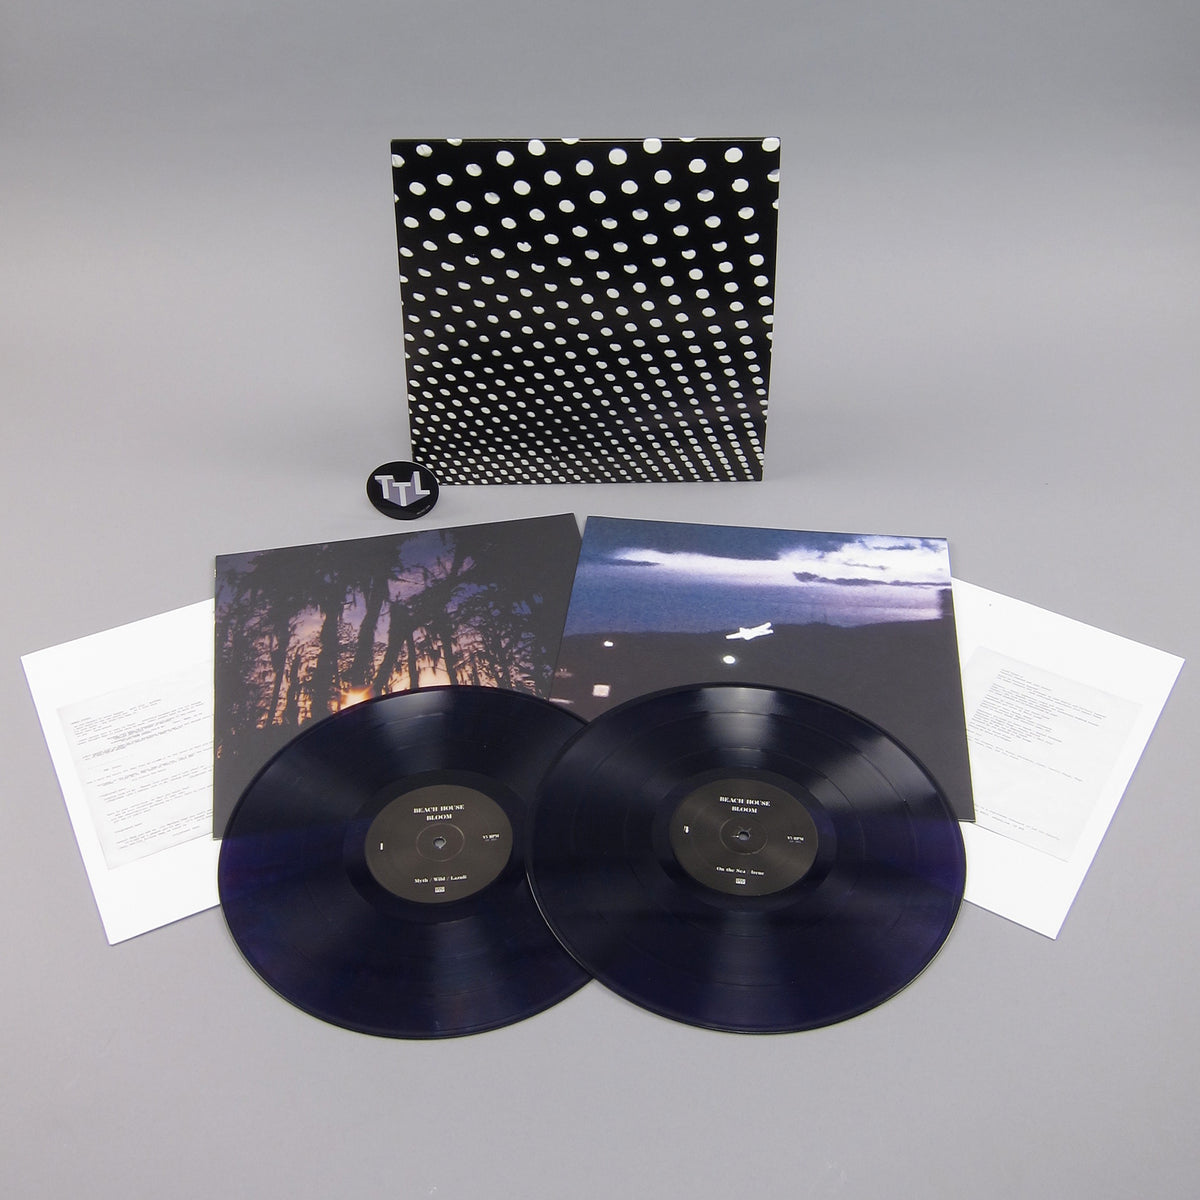 Beach House: Bloom (Colored Vinyl) Vinyl 2LP - Turntable Lab Exclusive - LIMIT 2 PER CUSTOMER